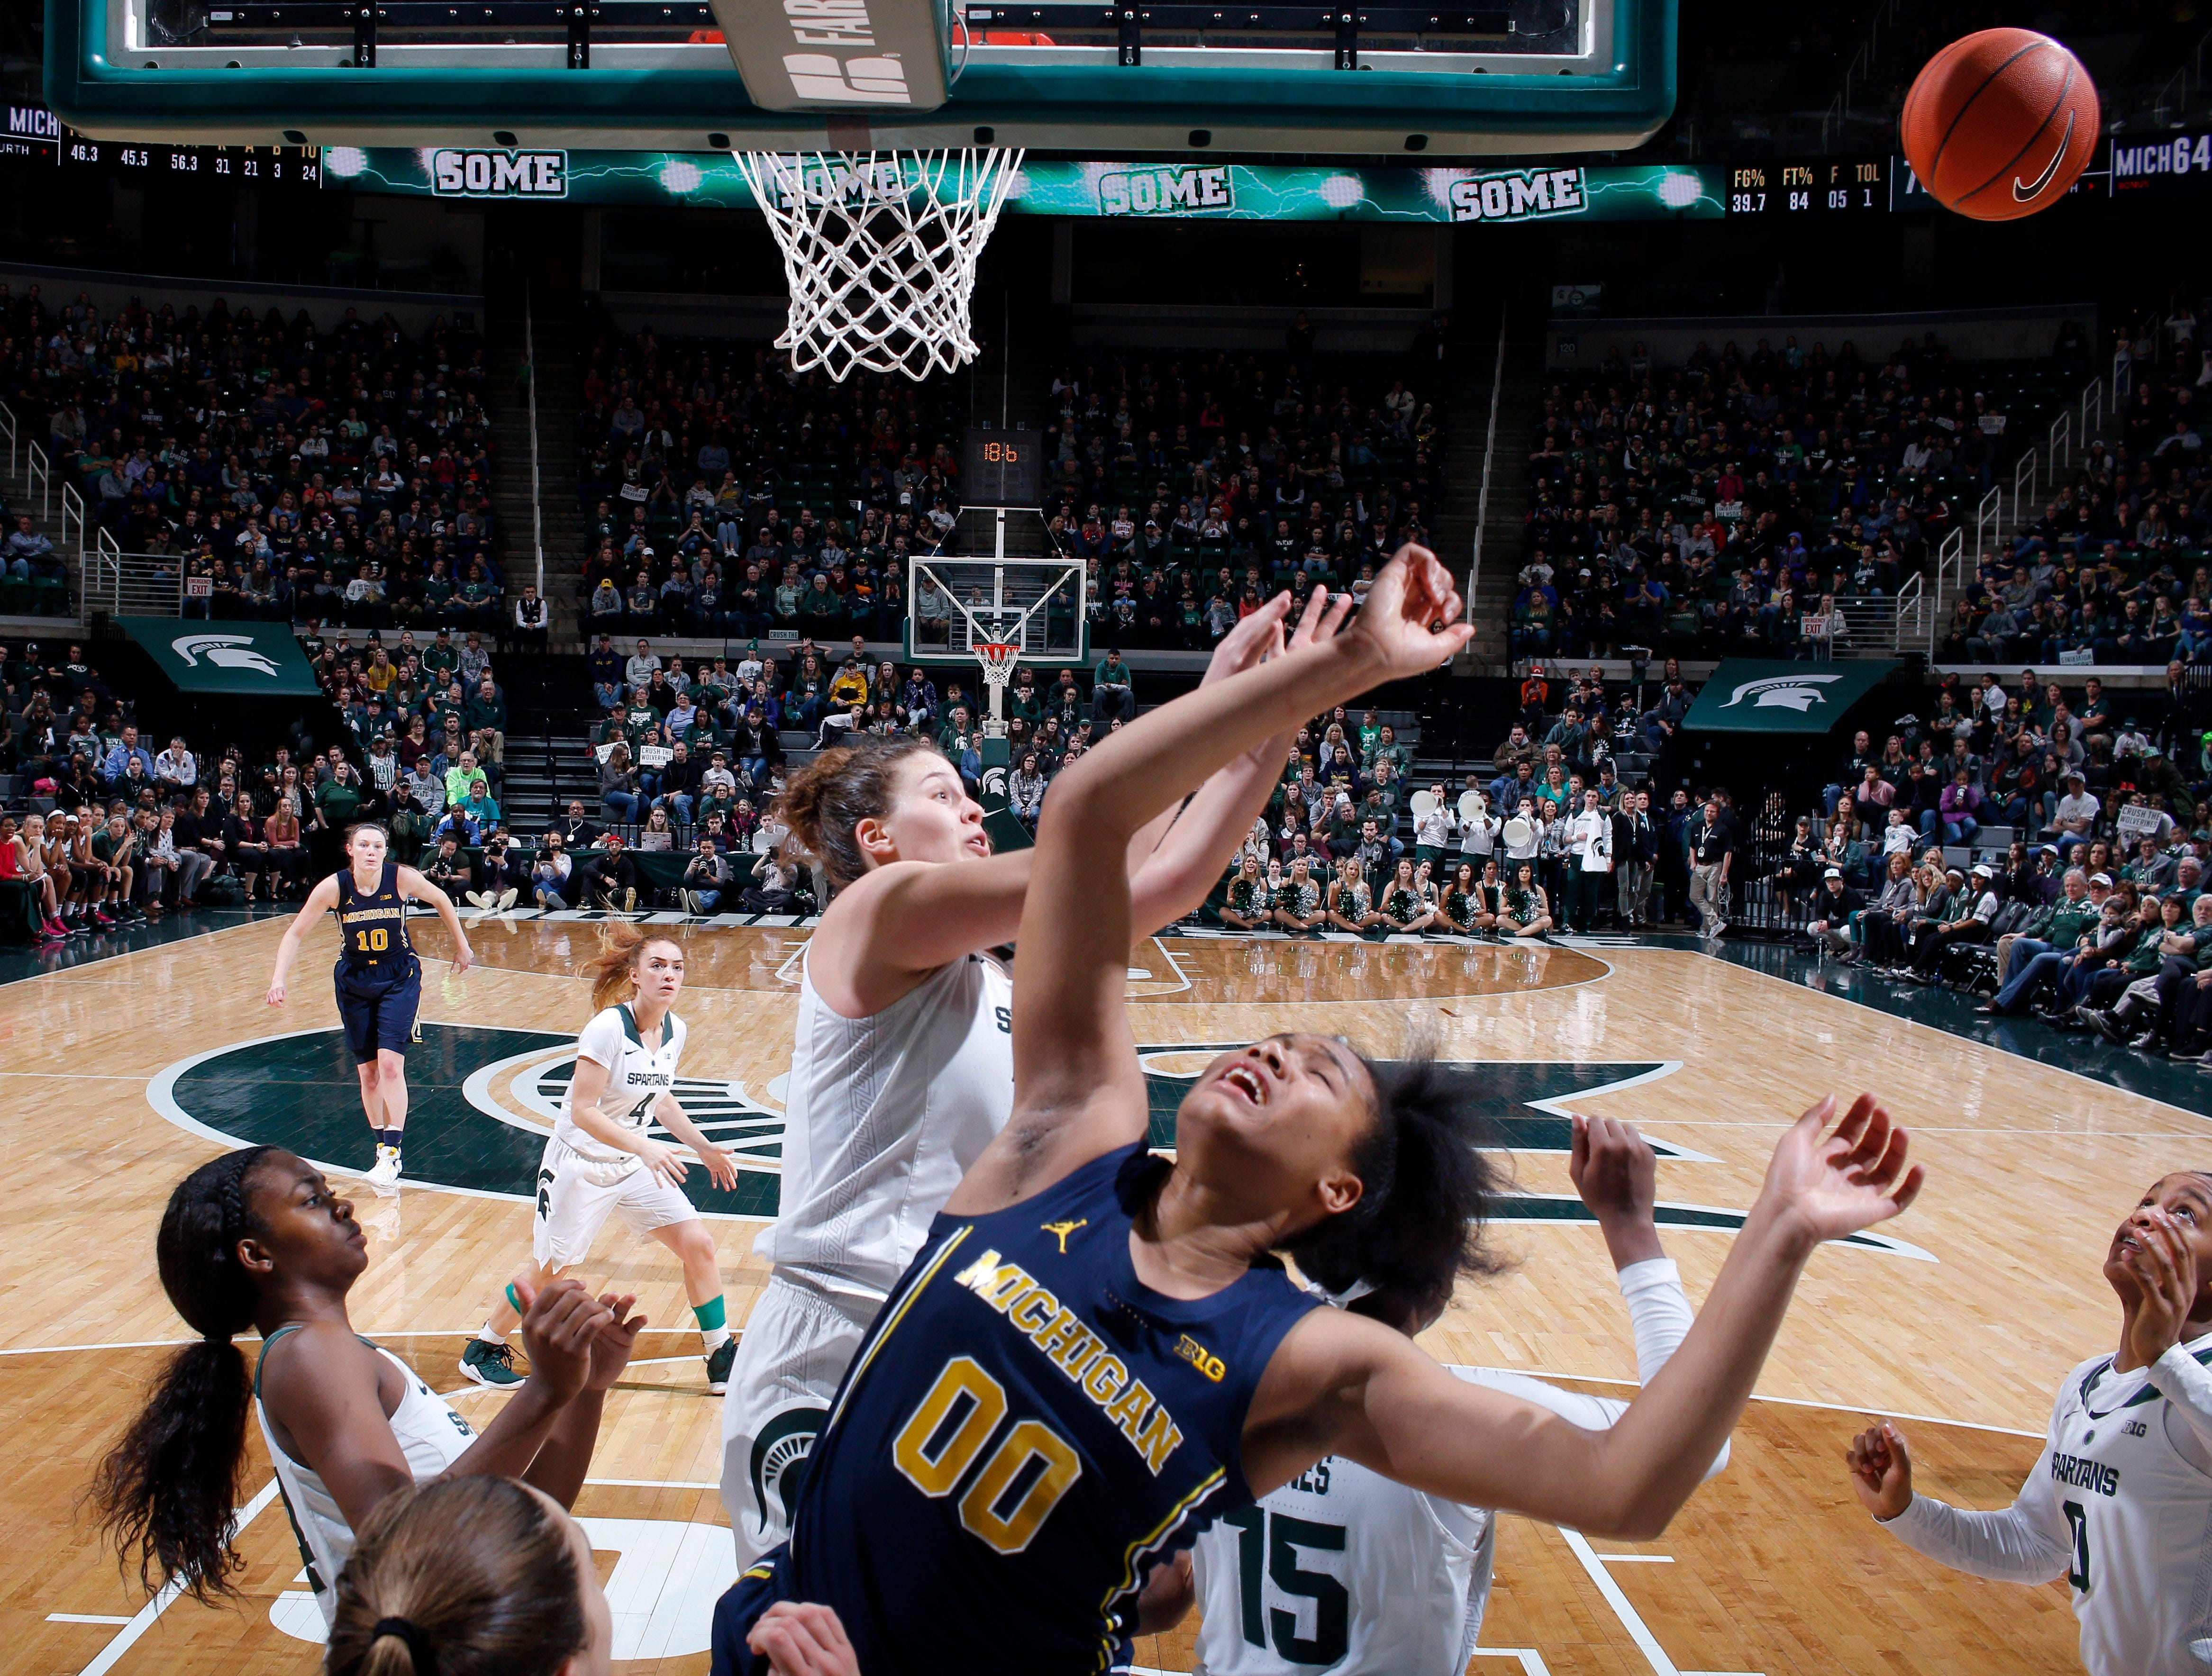 Michigan's Naz Hillmon (00) and Michigan State's Jenna Allen, center, battle for a rebound during the fourth quarter.